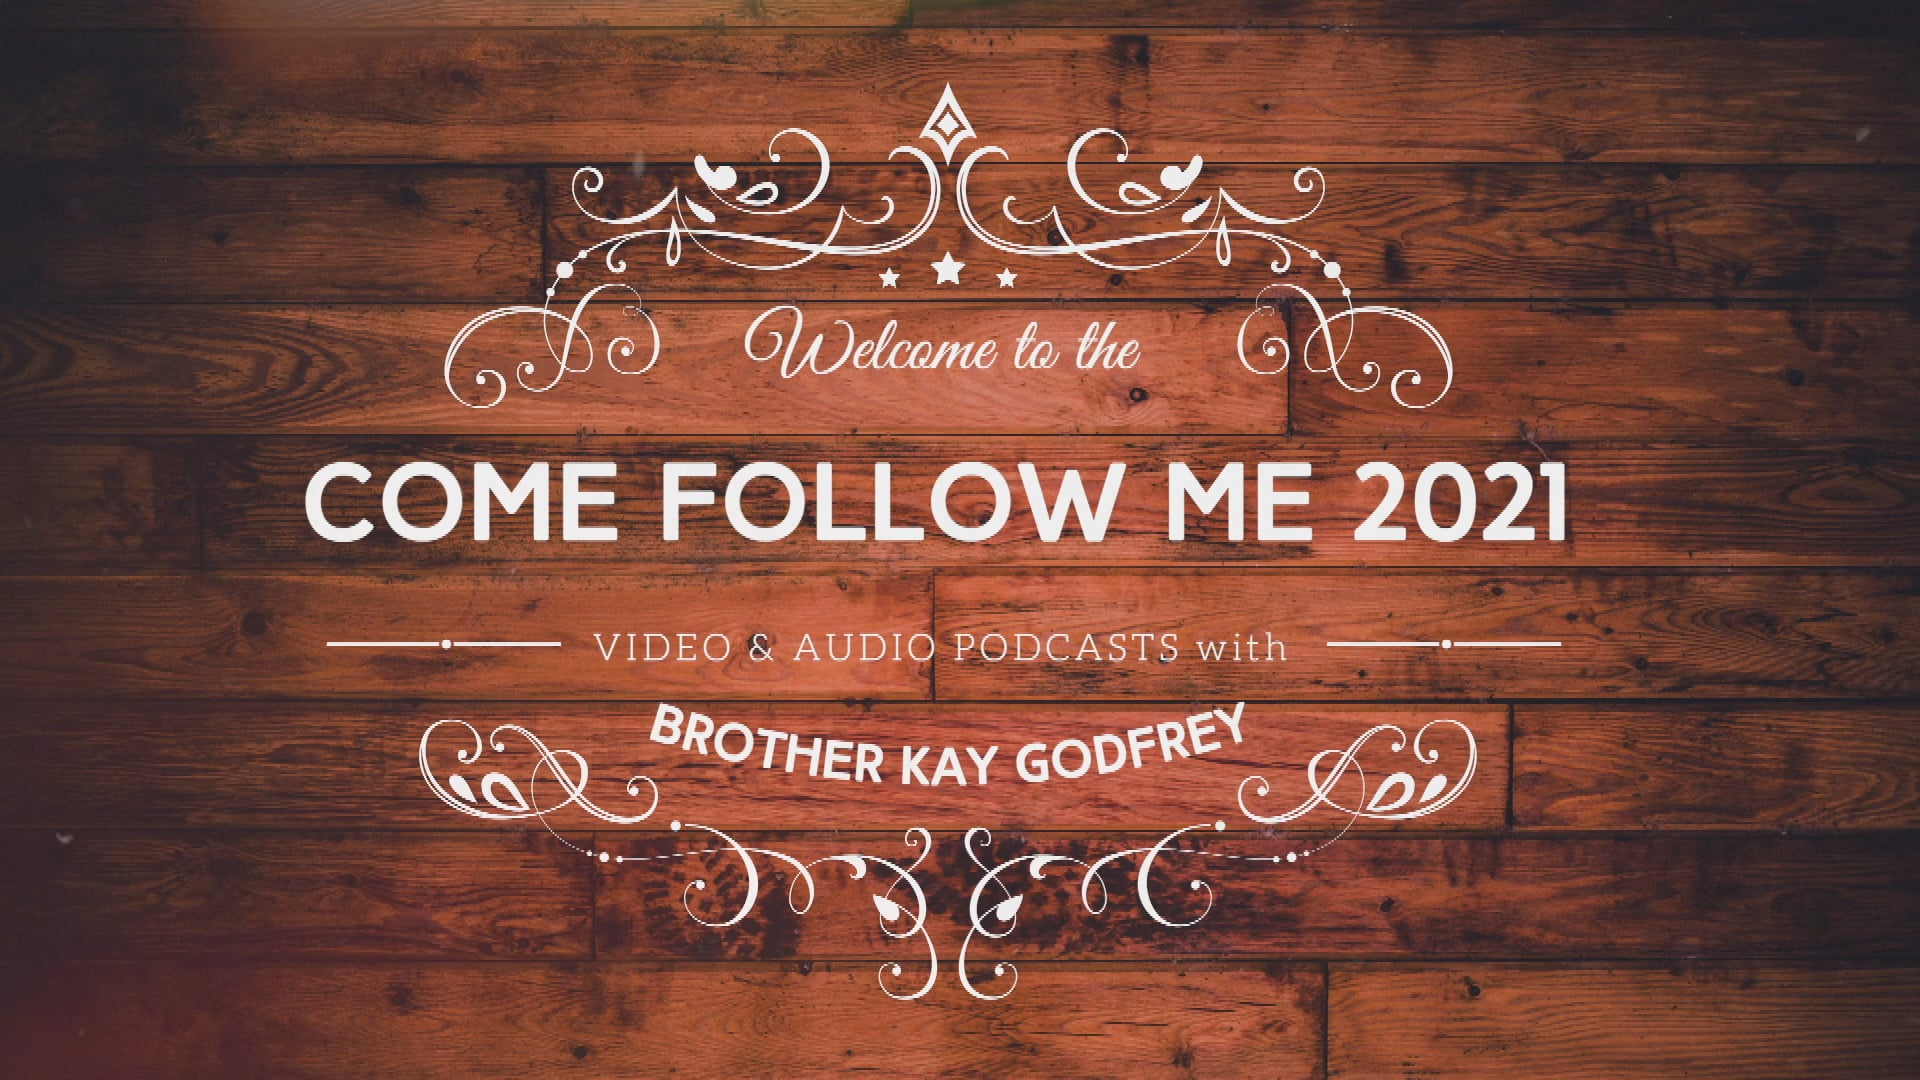 Intro to: Come Follow Me 2021 - Doctrine and Covenants with Kay Godfrey